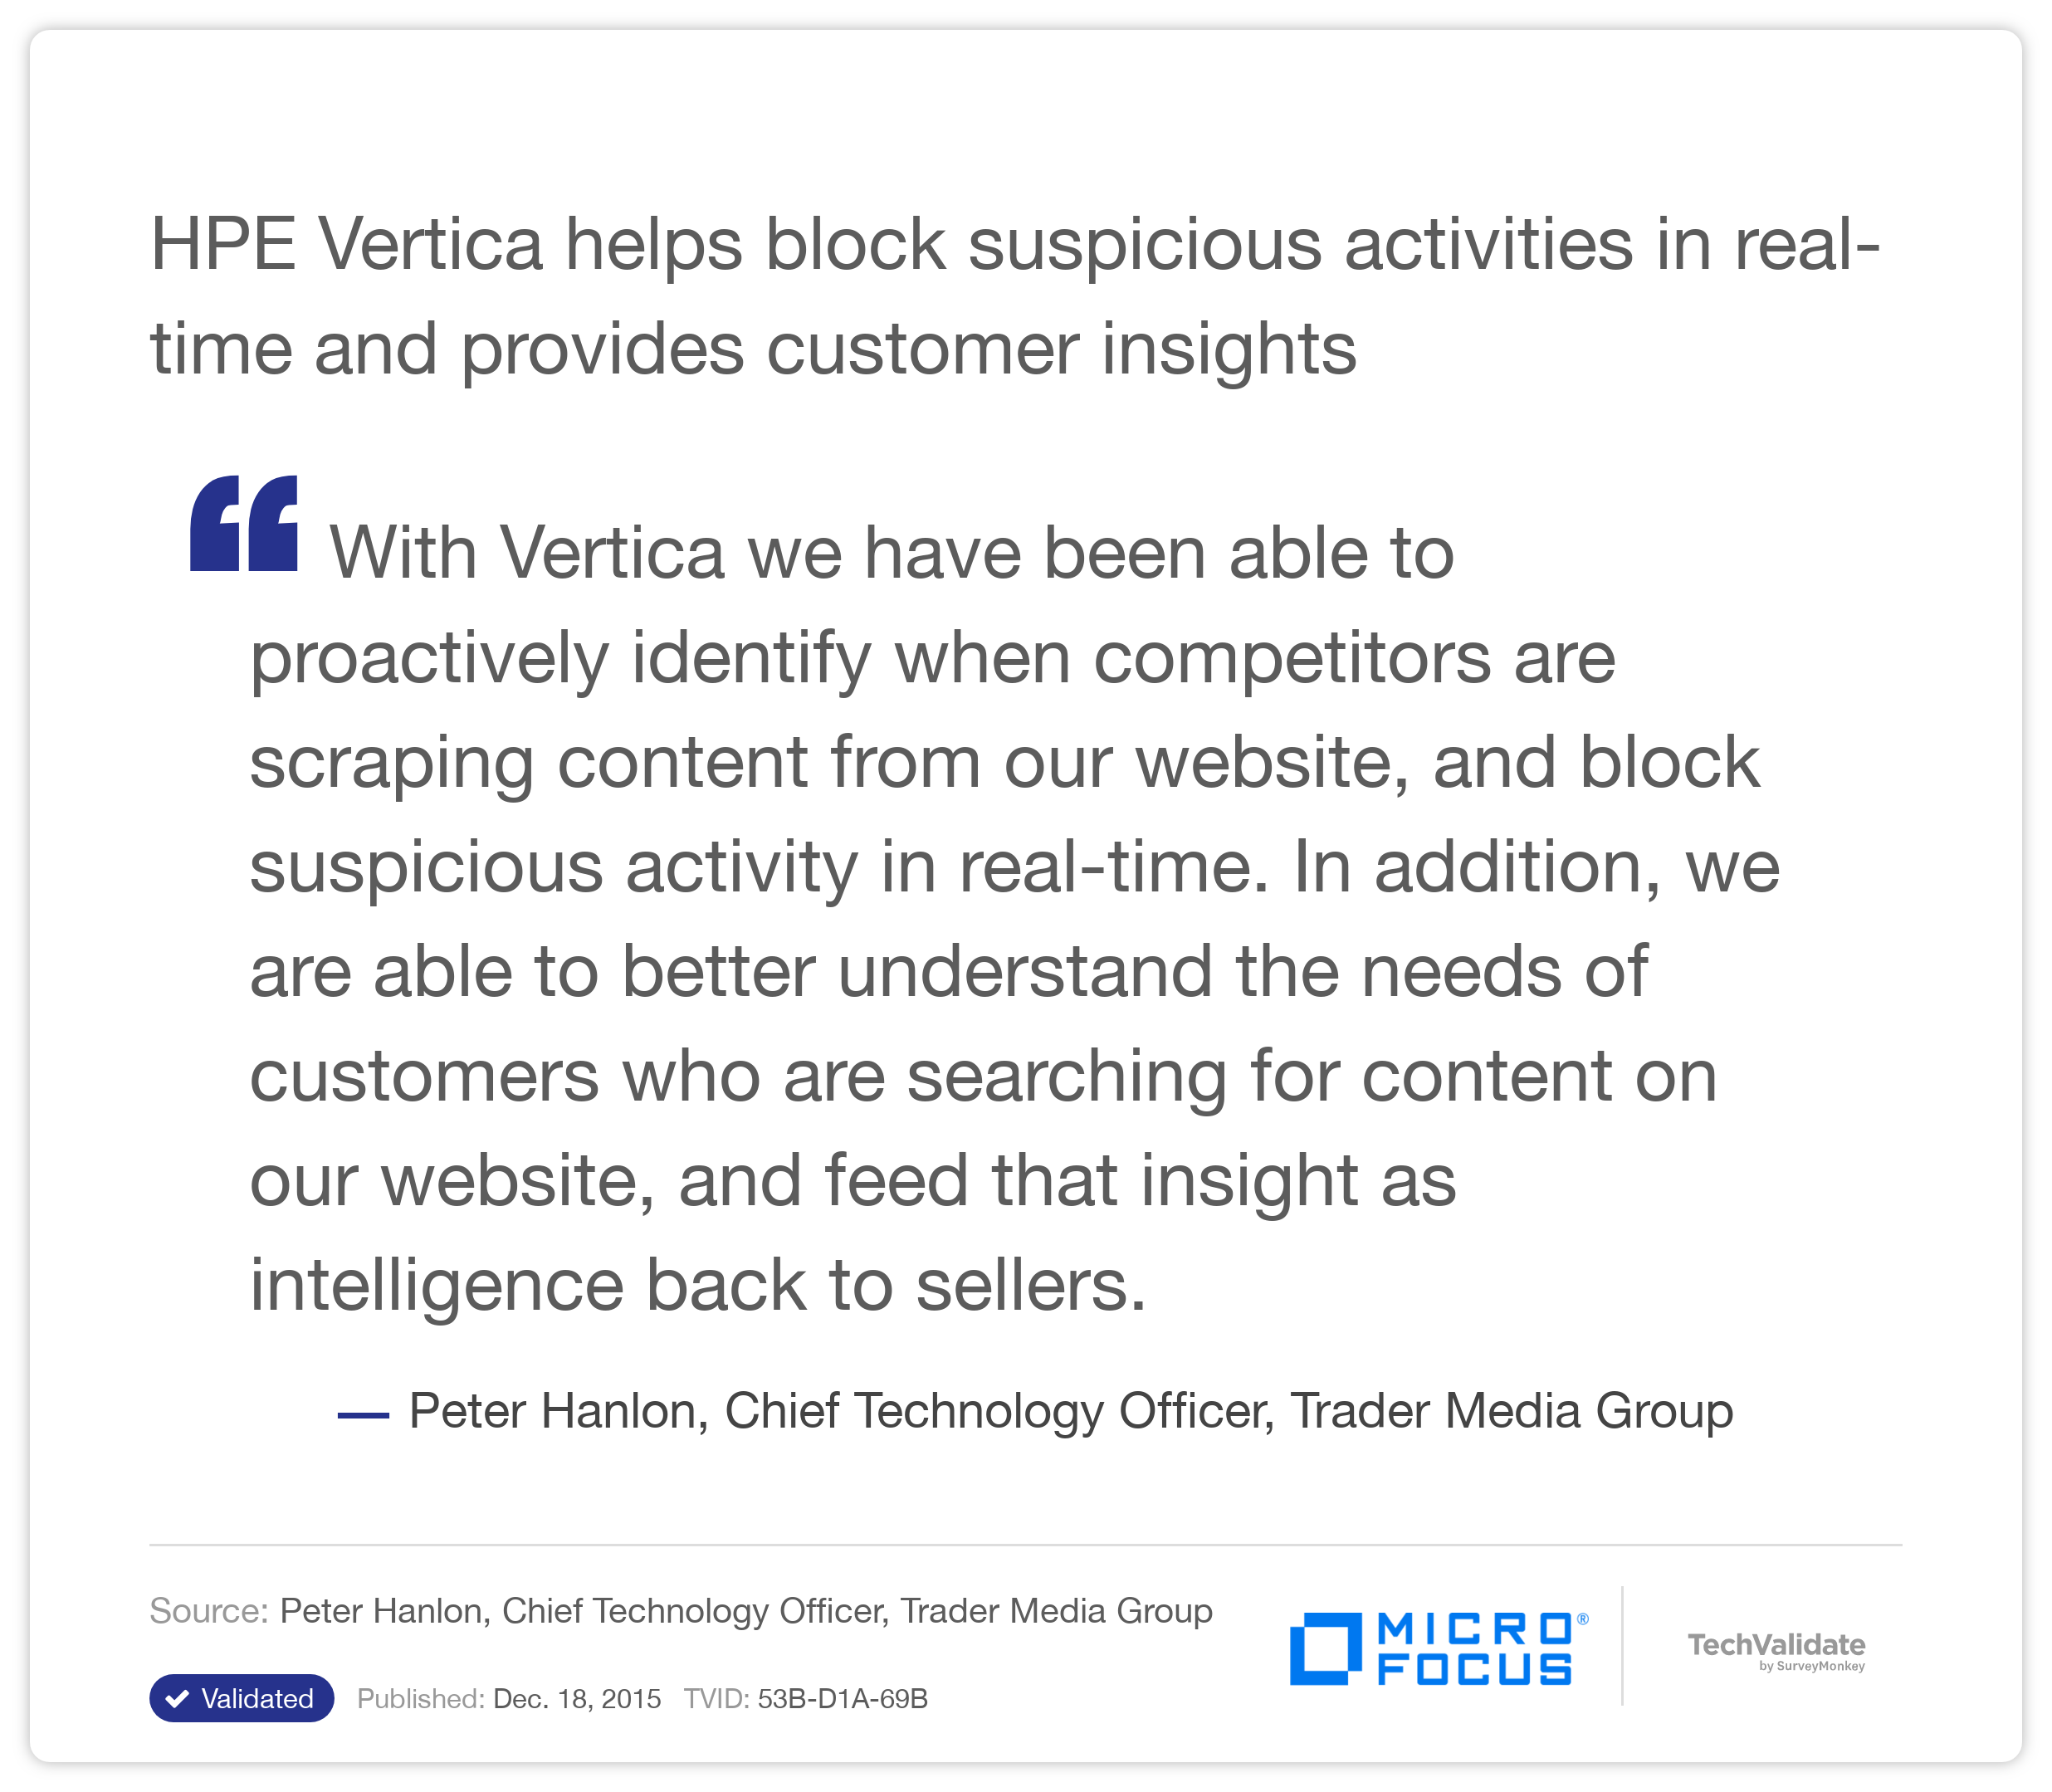 HP Vertica helps block suspicious activities in real-time and provides customer insights